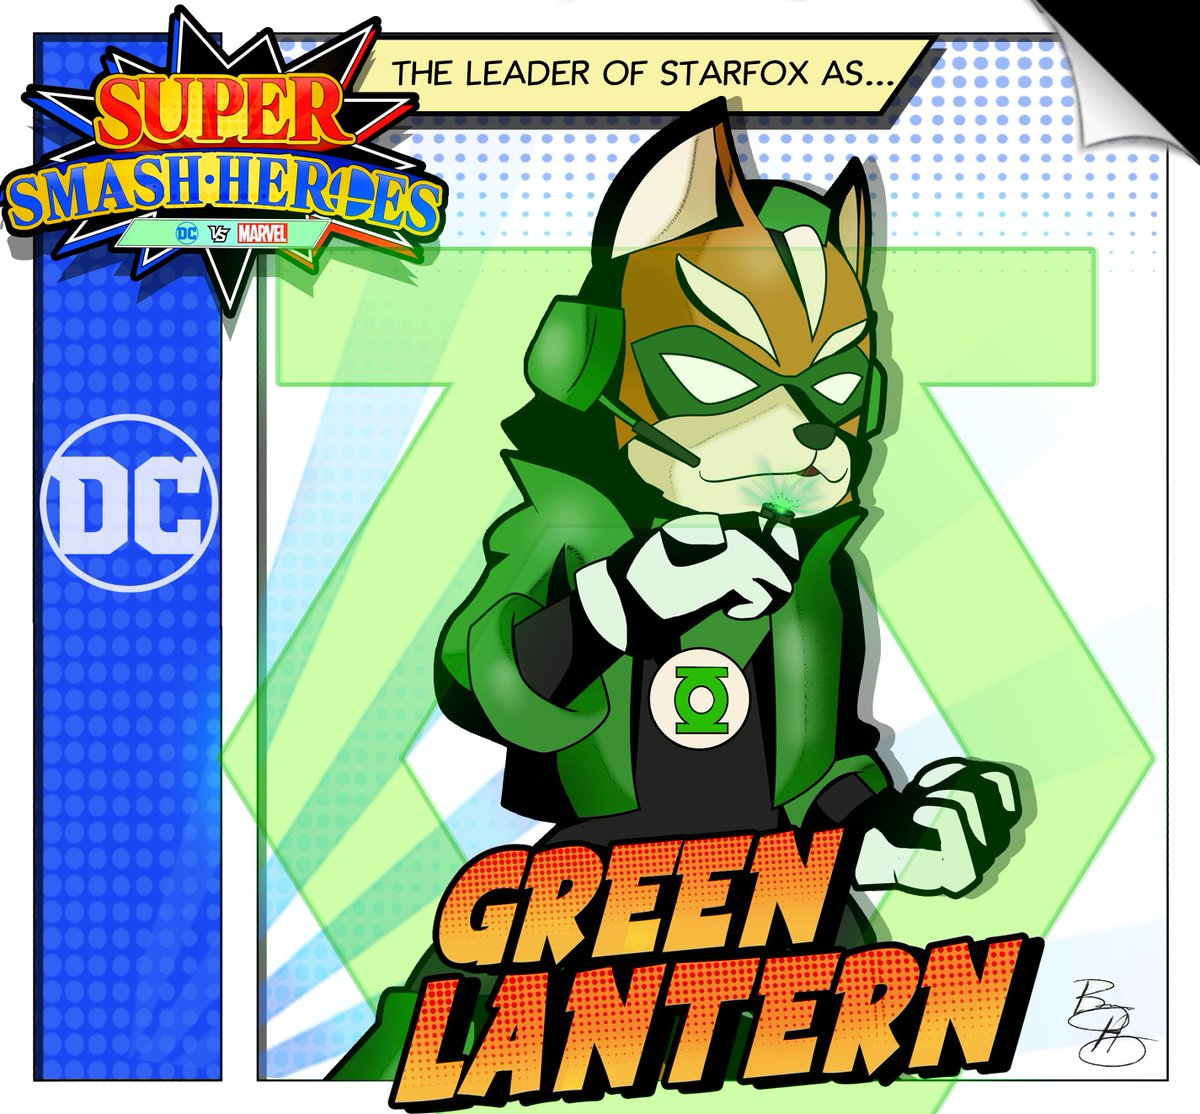 Here's my Super Smash Heroes series where I draw the all the Smash Fighters as Marvel and DC! Here's Fox as Green Lantern! #SmashBrosUltimate #SuperSmashBrosUltimate #Nintendo #SuperSmashBros #Marvel #Avengers  #DisneyPlus #starfox #dccomics #fanart #crossover #supersmashheroes